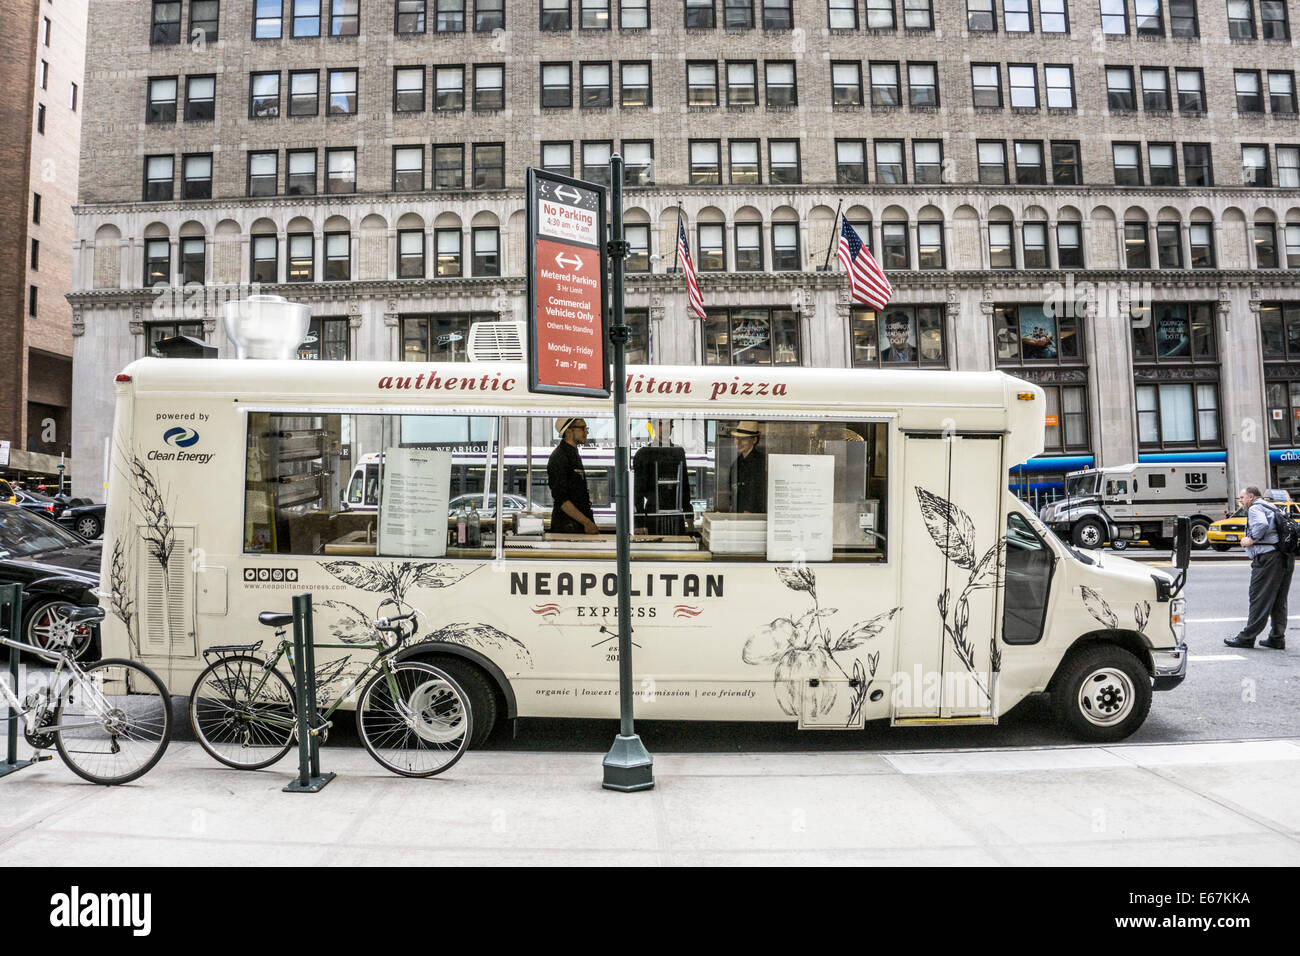 authentic Neapolitan pizza specialty food truck parked on East 34th street Manhattan open for business waiting for - Stock Image